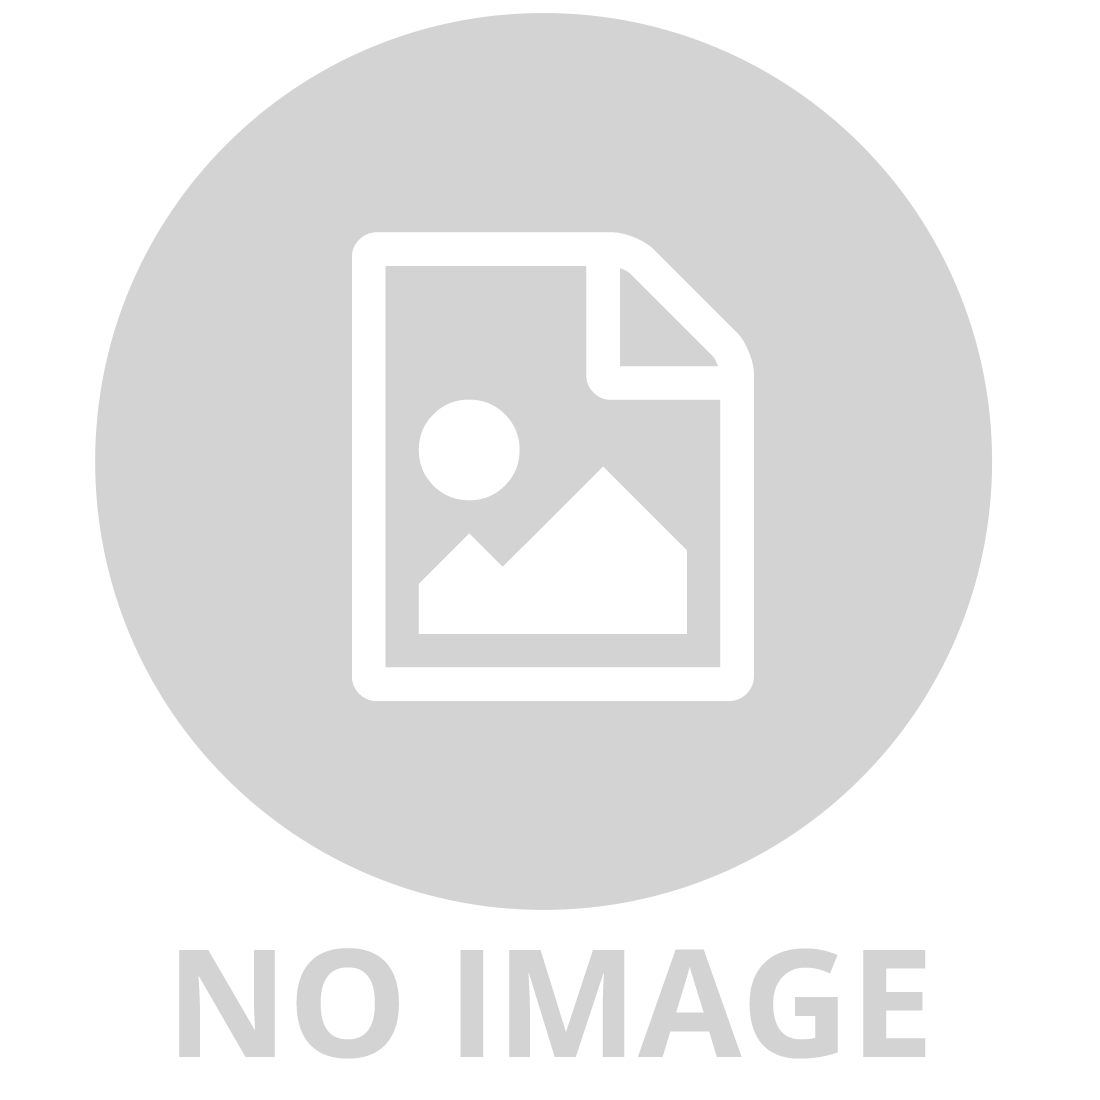 EXR29 600mm Fan Ext Rod Ant/Brass